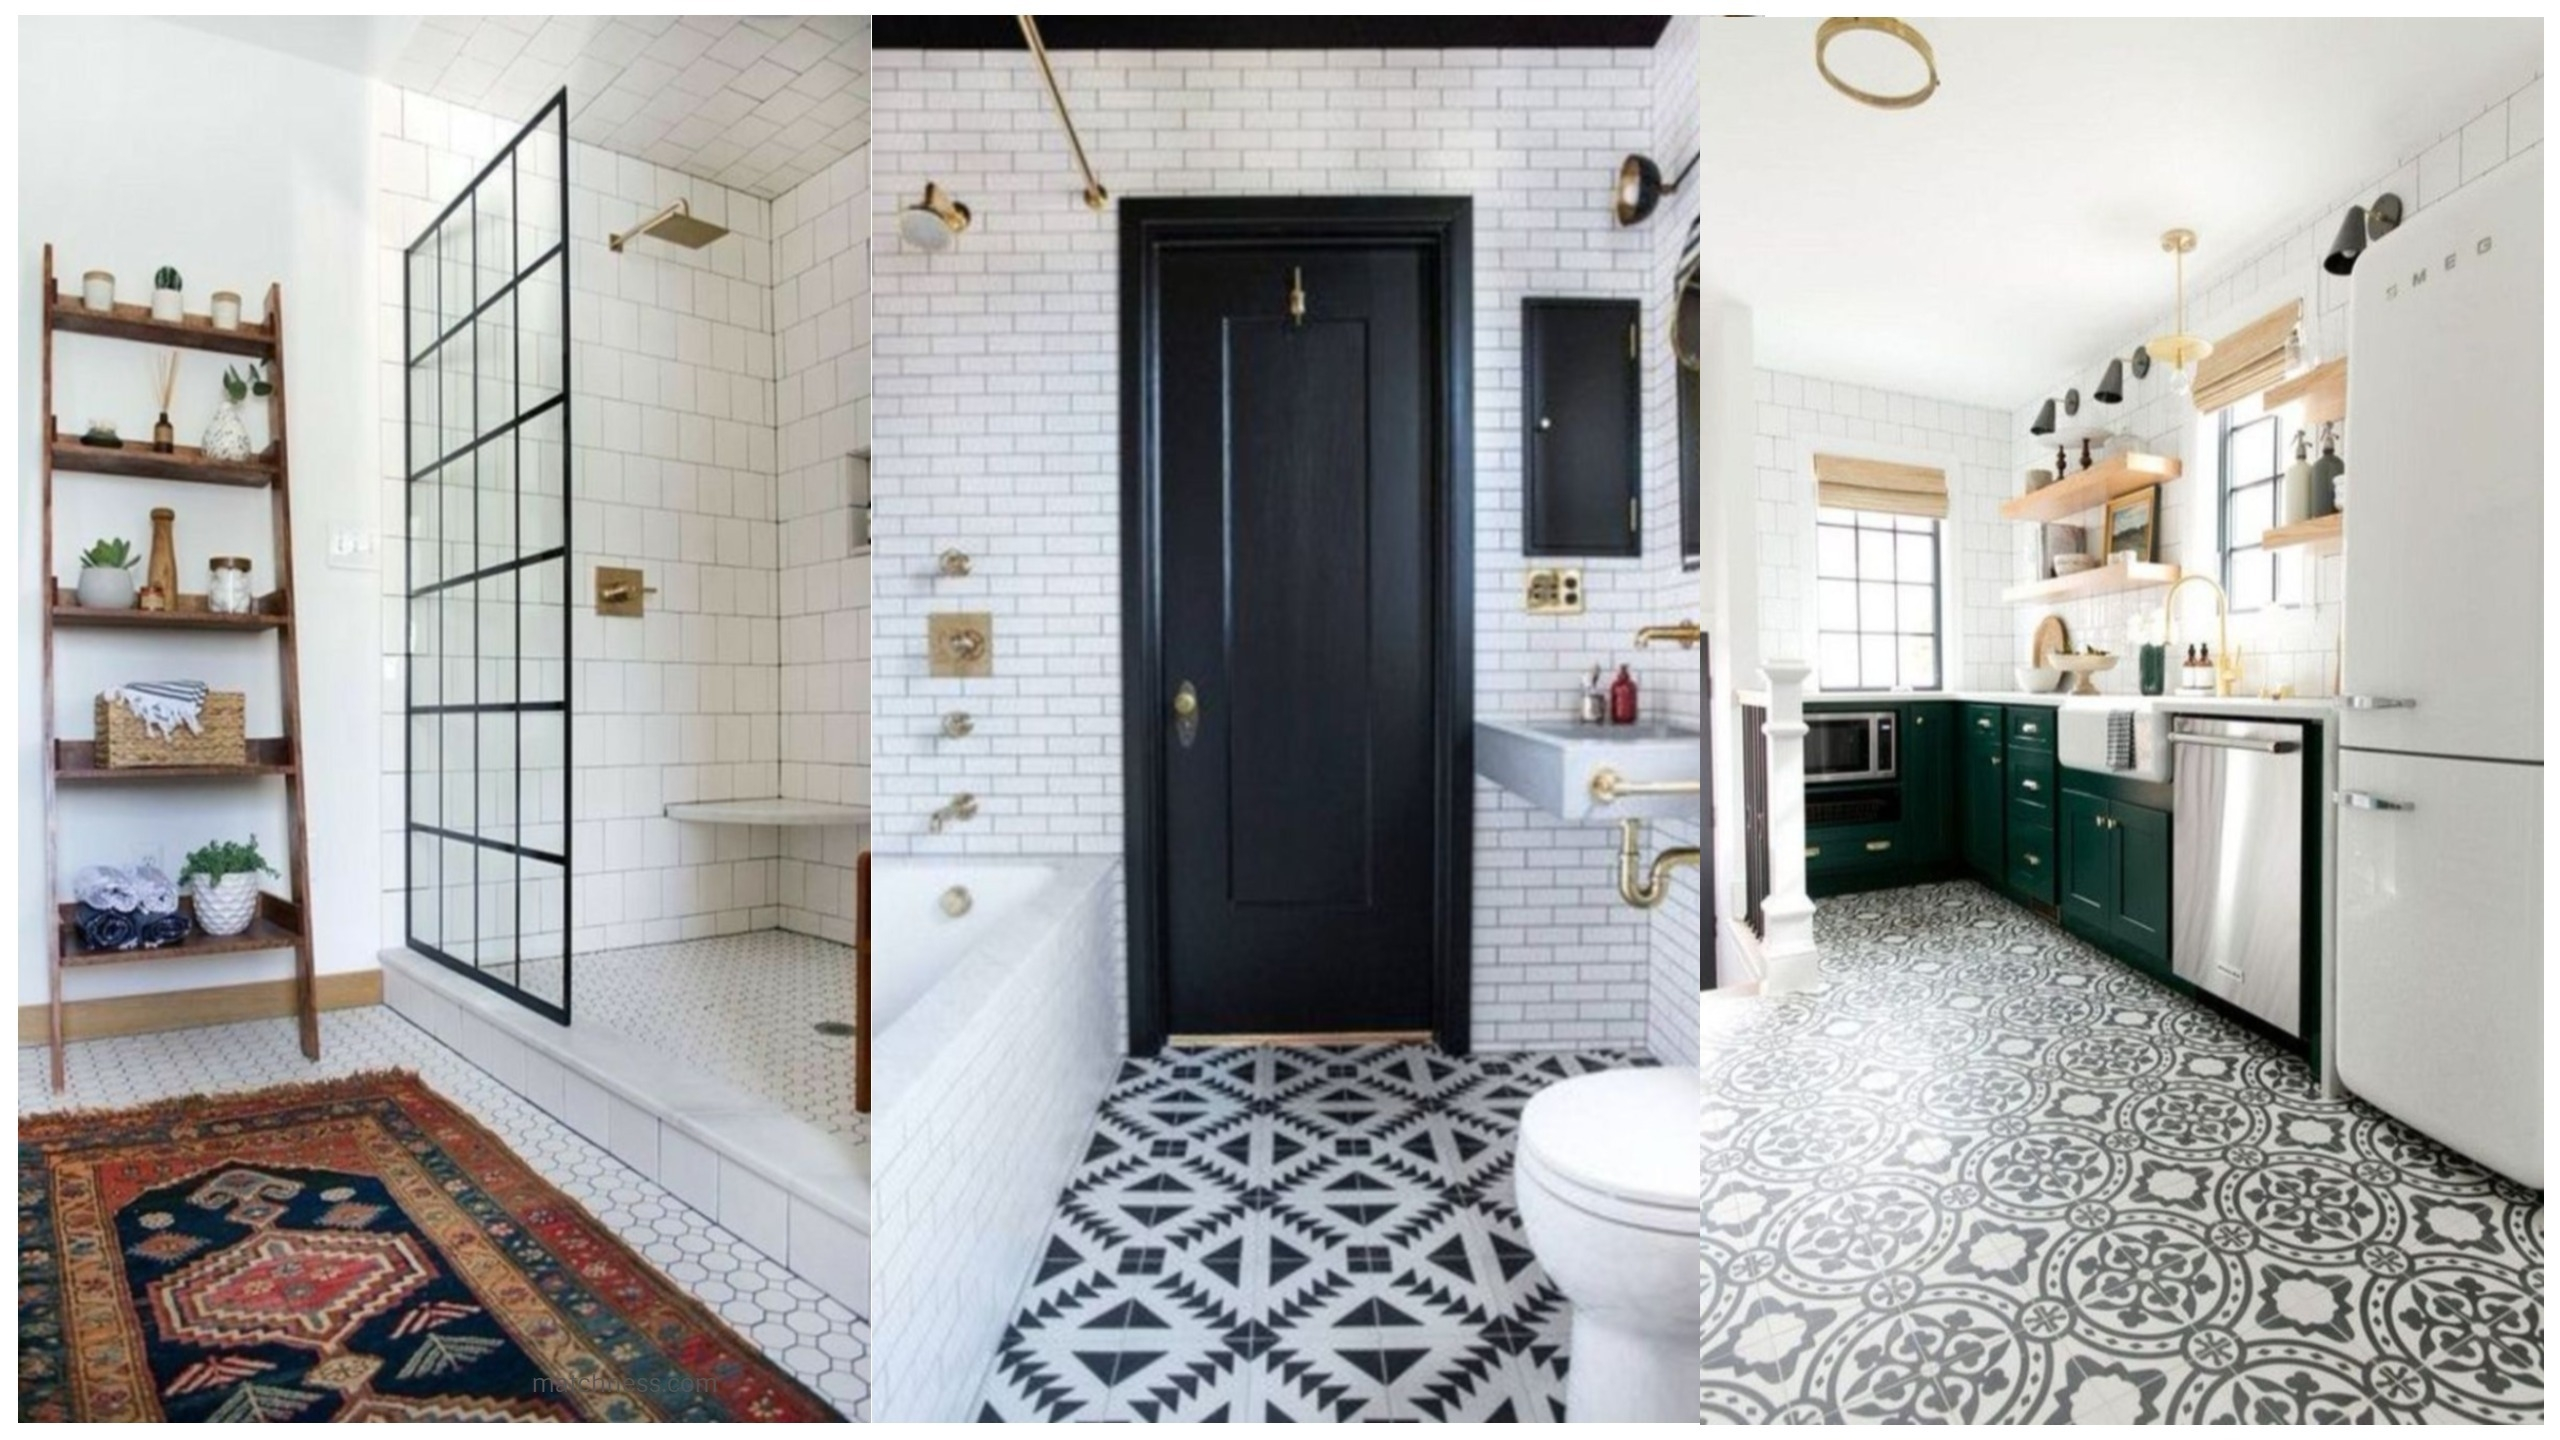 16 Lovely Tile Floor for Your Bathroom and Kitchen - Matchness.com